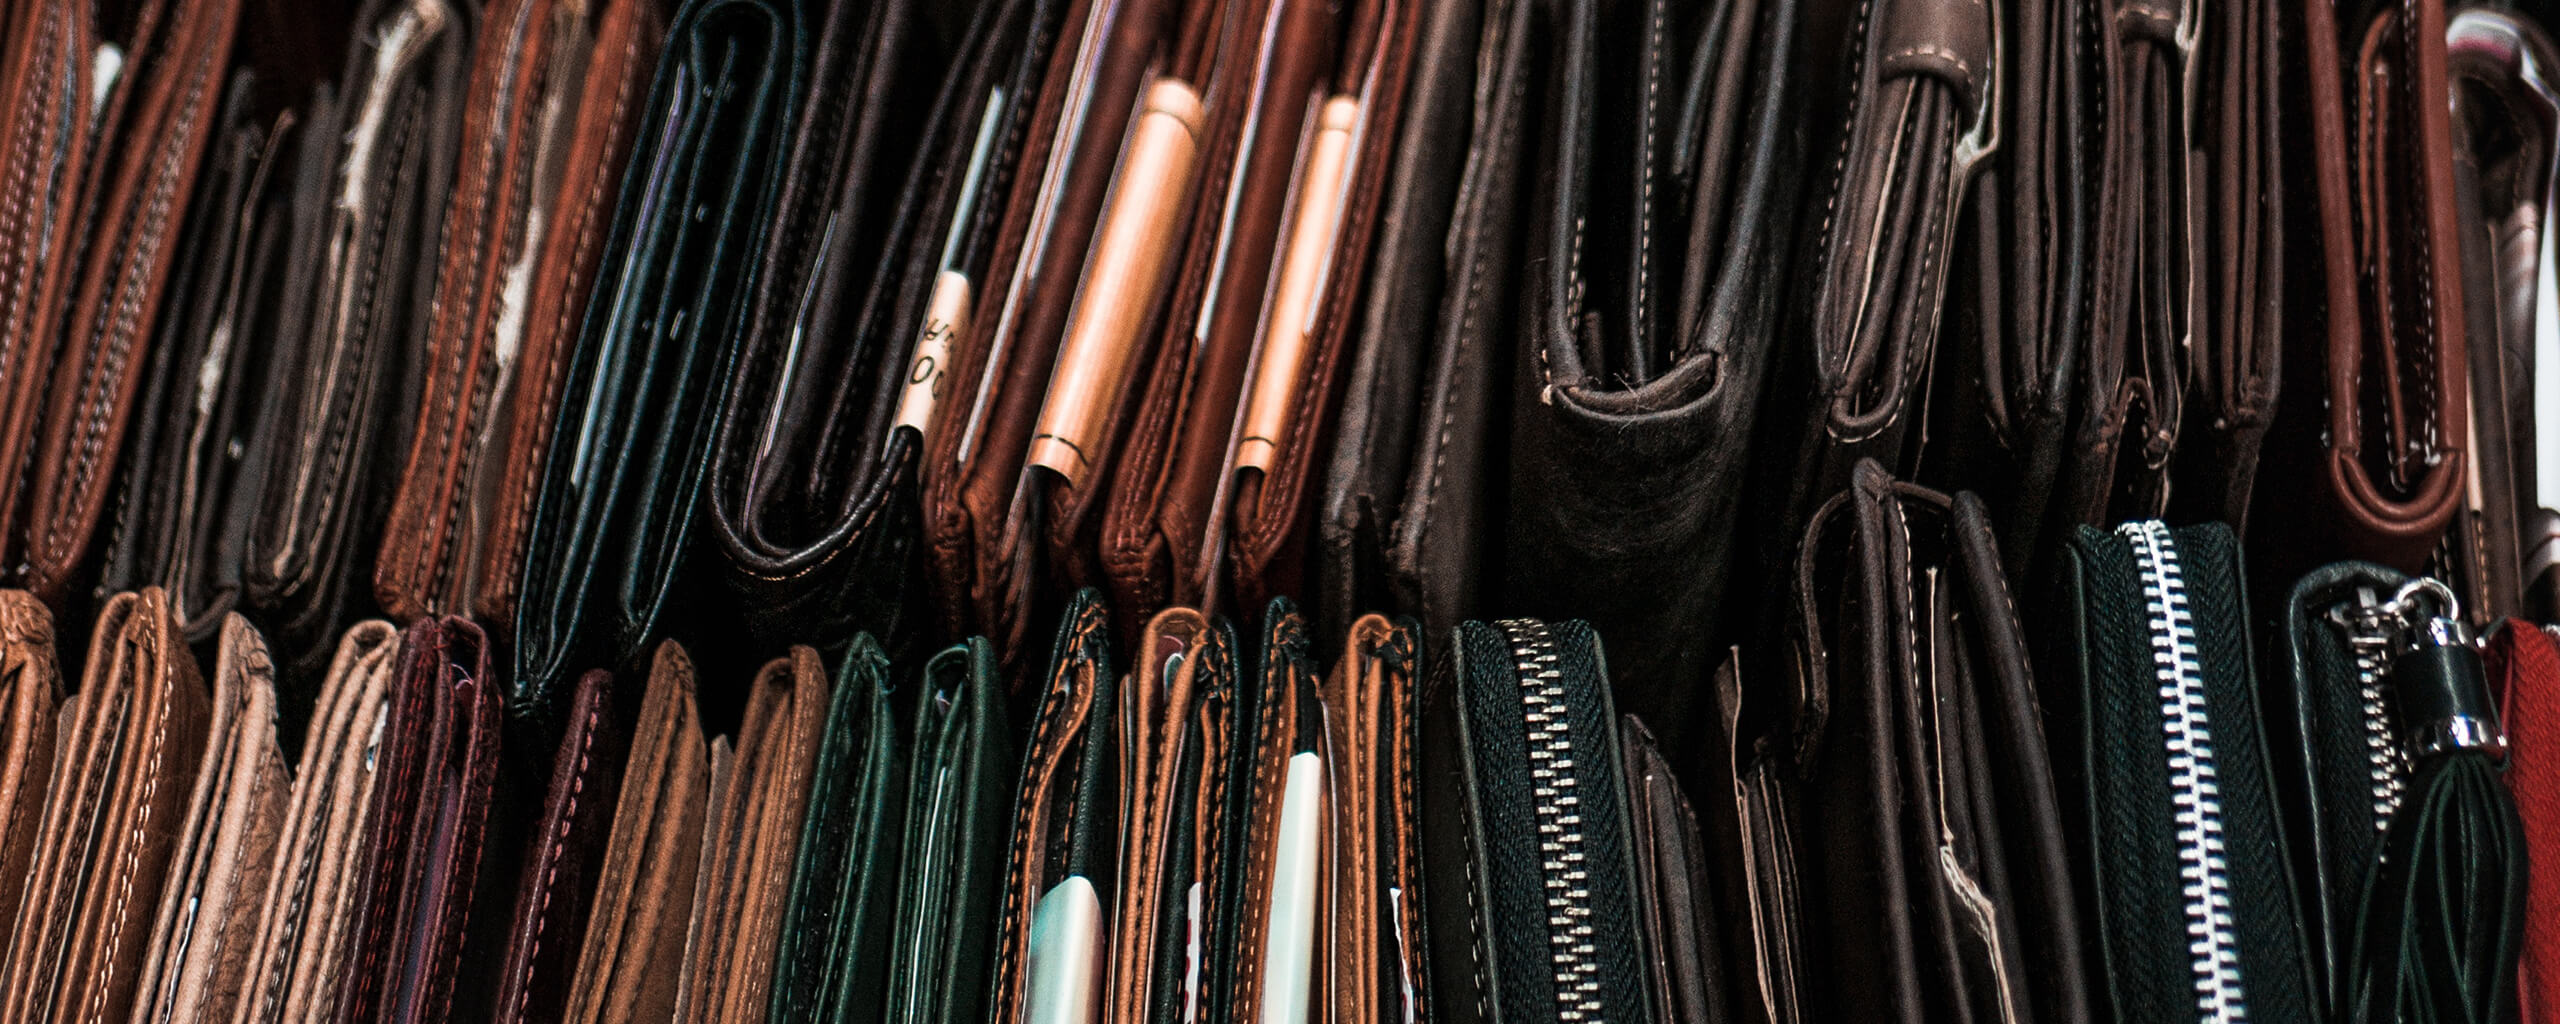 many wallets on 2 rows